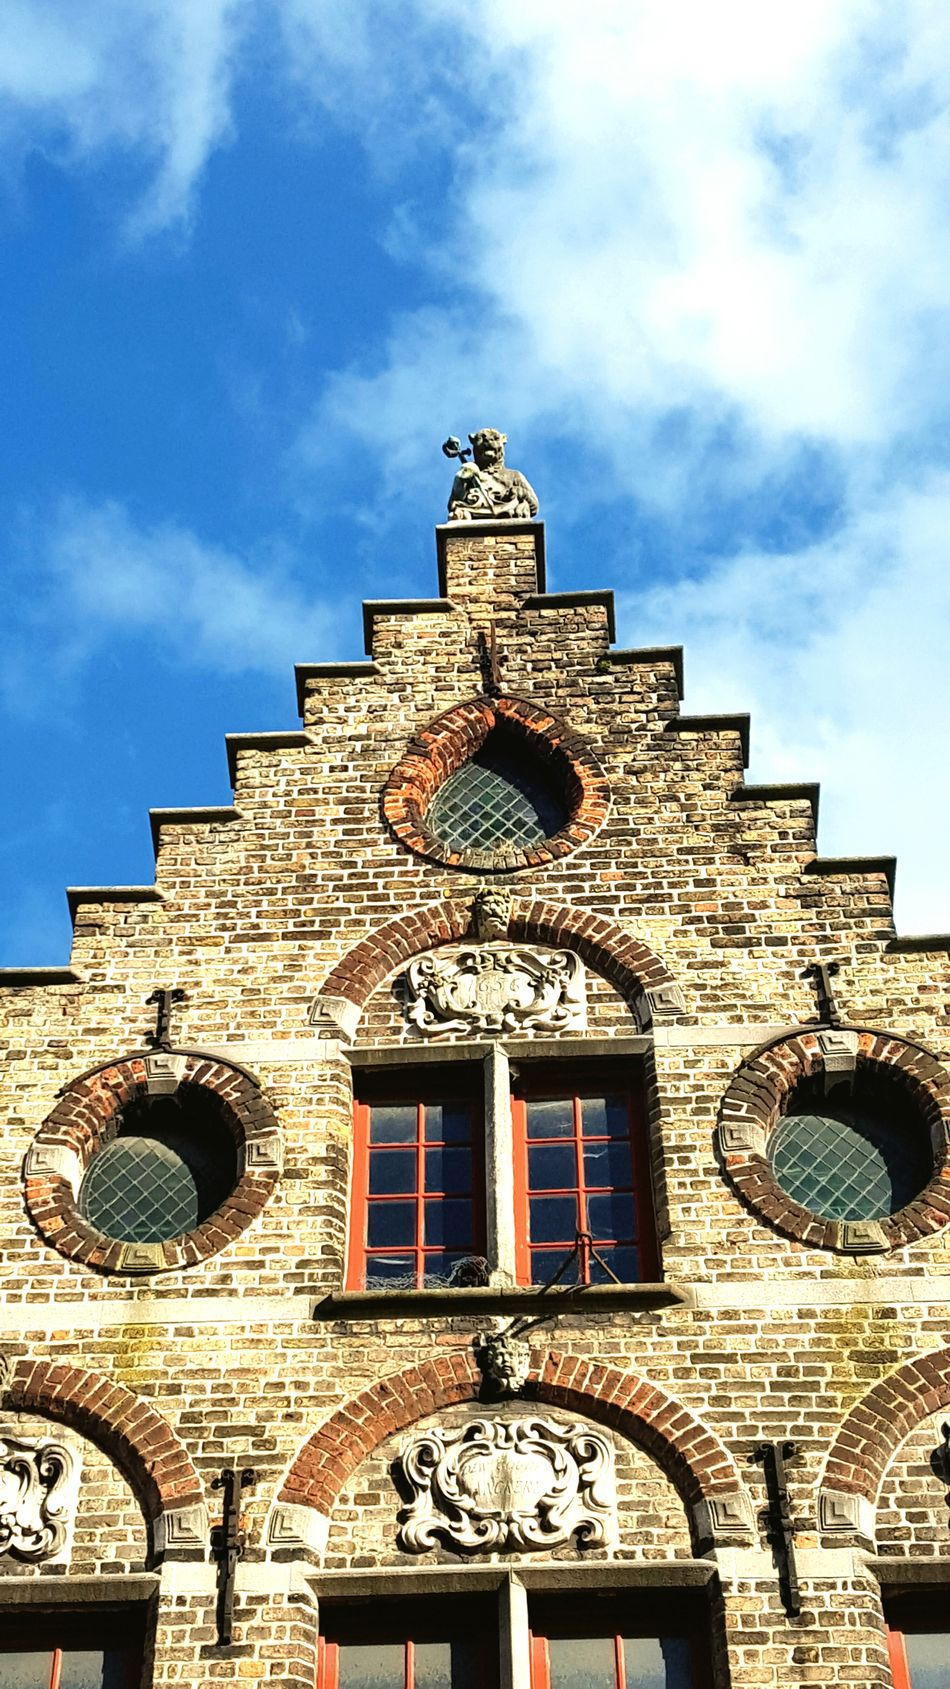 Architecture Building Exterior Sky Built Structure Religion Cloud - Sky Travel Destinations Travel Low Angle View History No People Archival Place Of Worship Day Outdoors Flandres  Flanders Travel Destination Brugge Bruges Architecture Cityscape Old Town Tourism Clear Sky